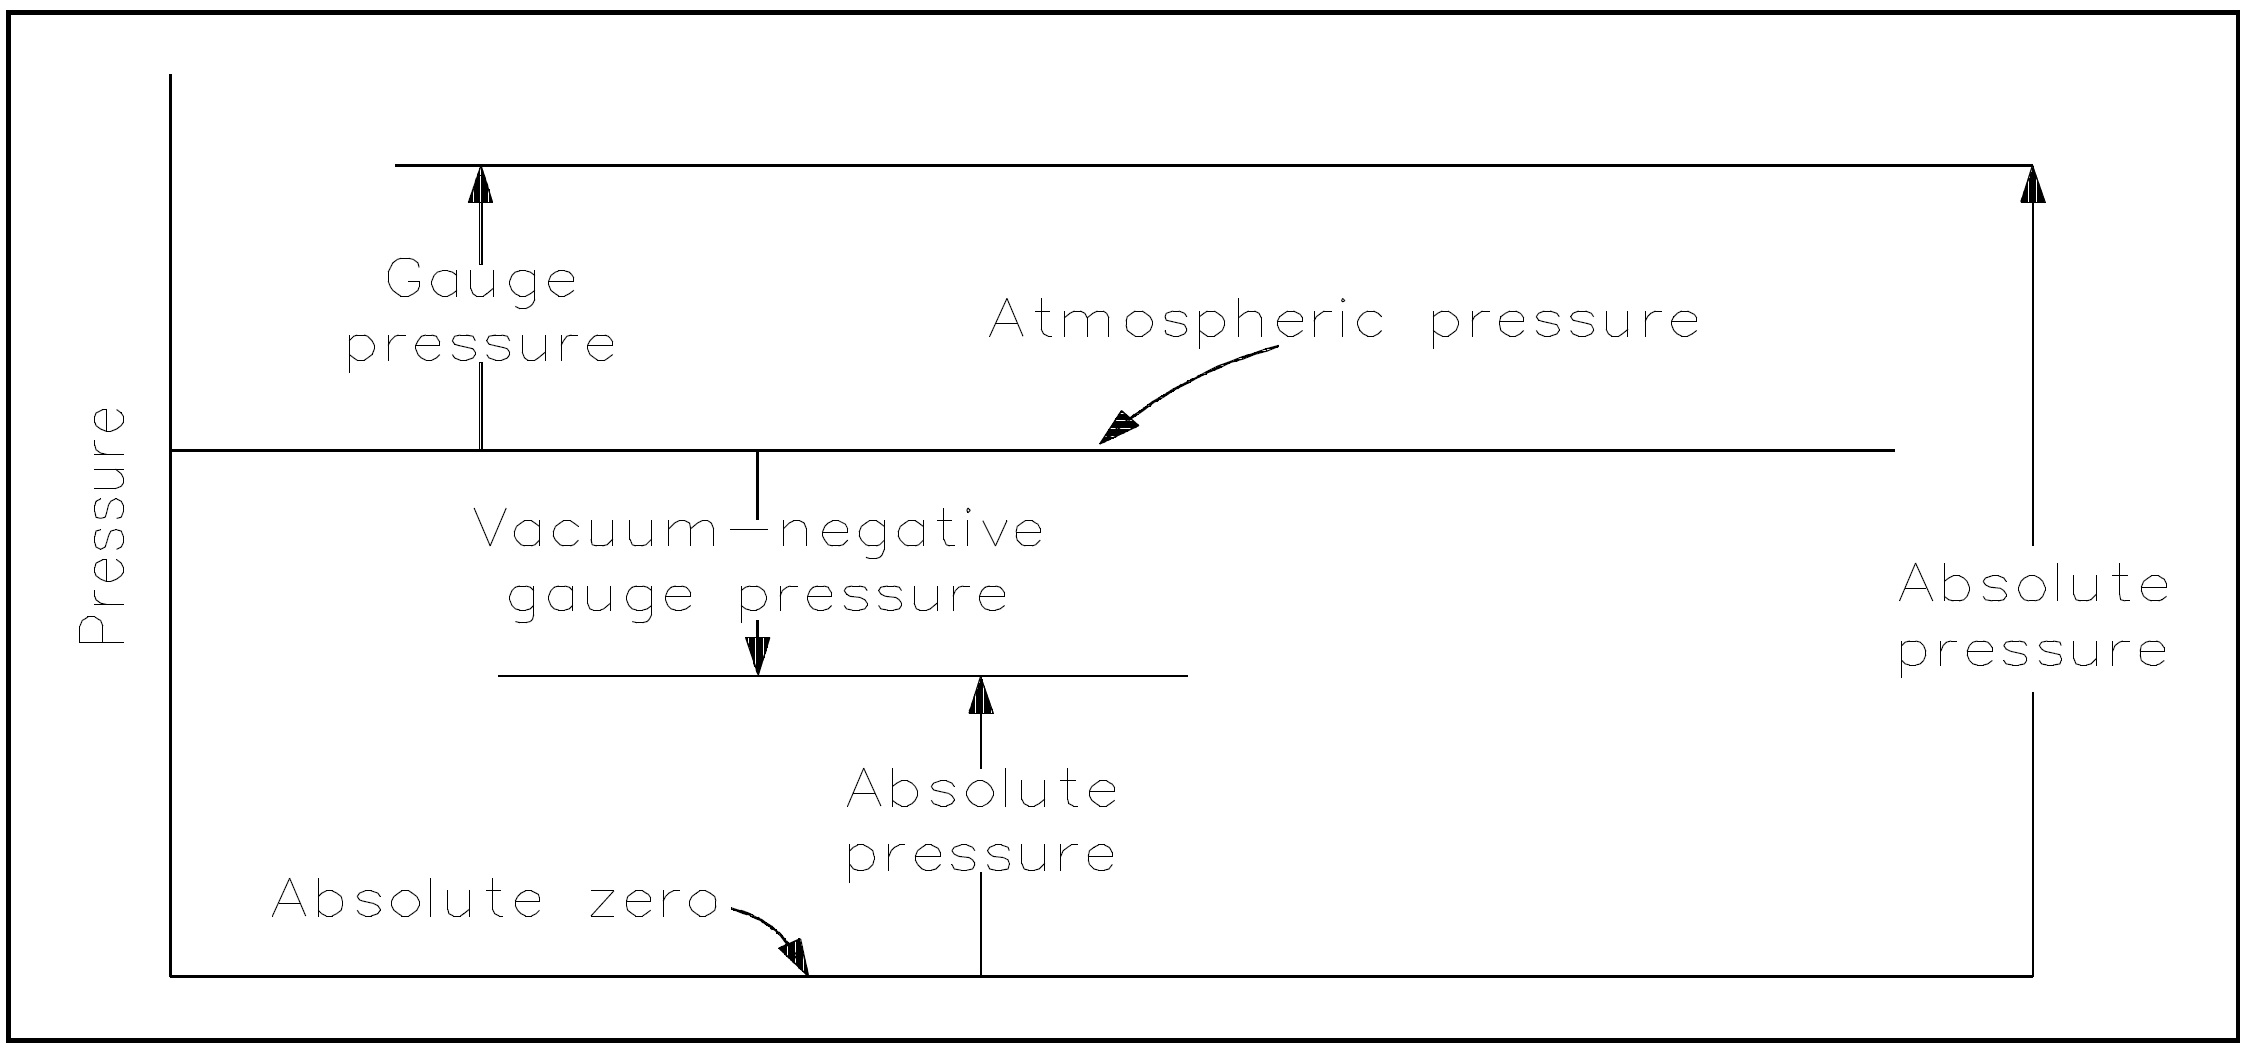 Thermodynamics Help Mollier Diagram Power Plant Figure 2 Pressure Relationships